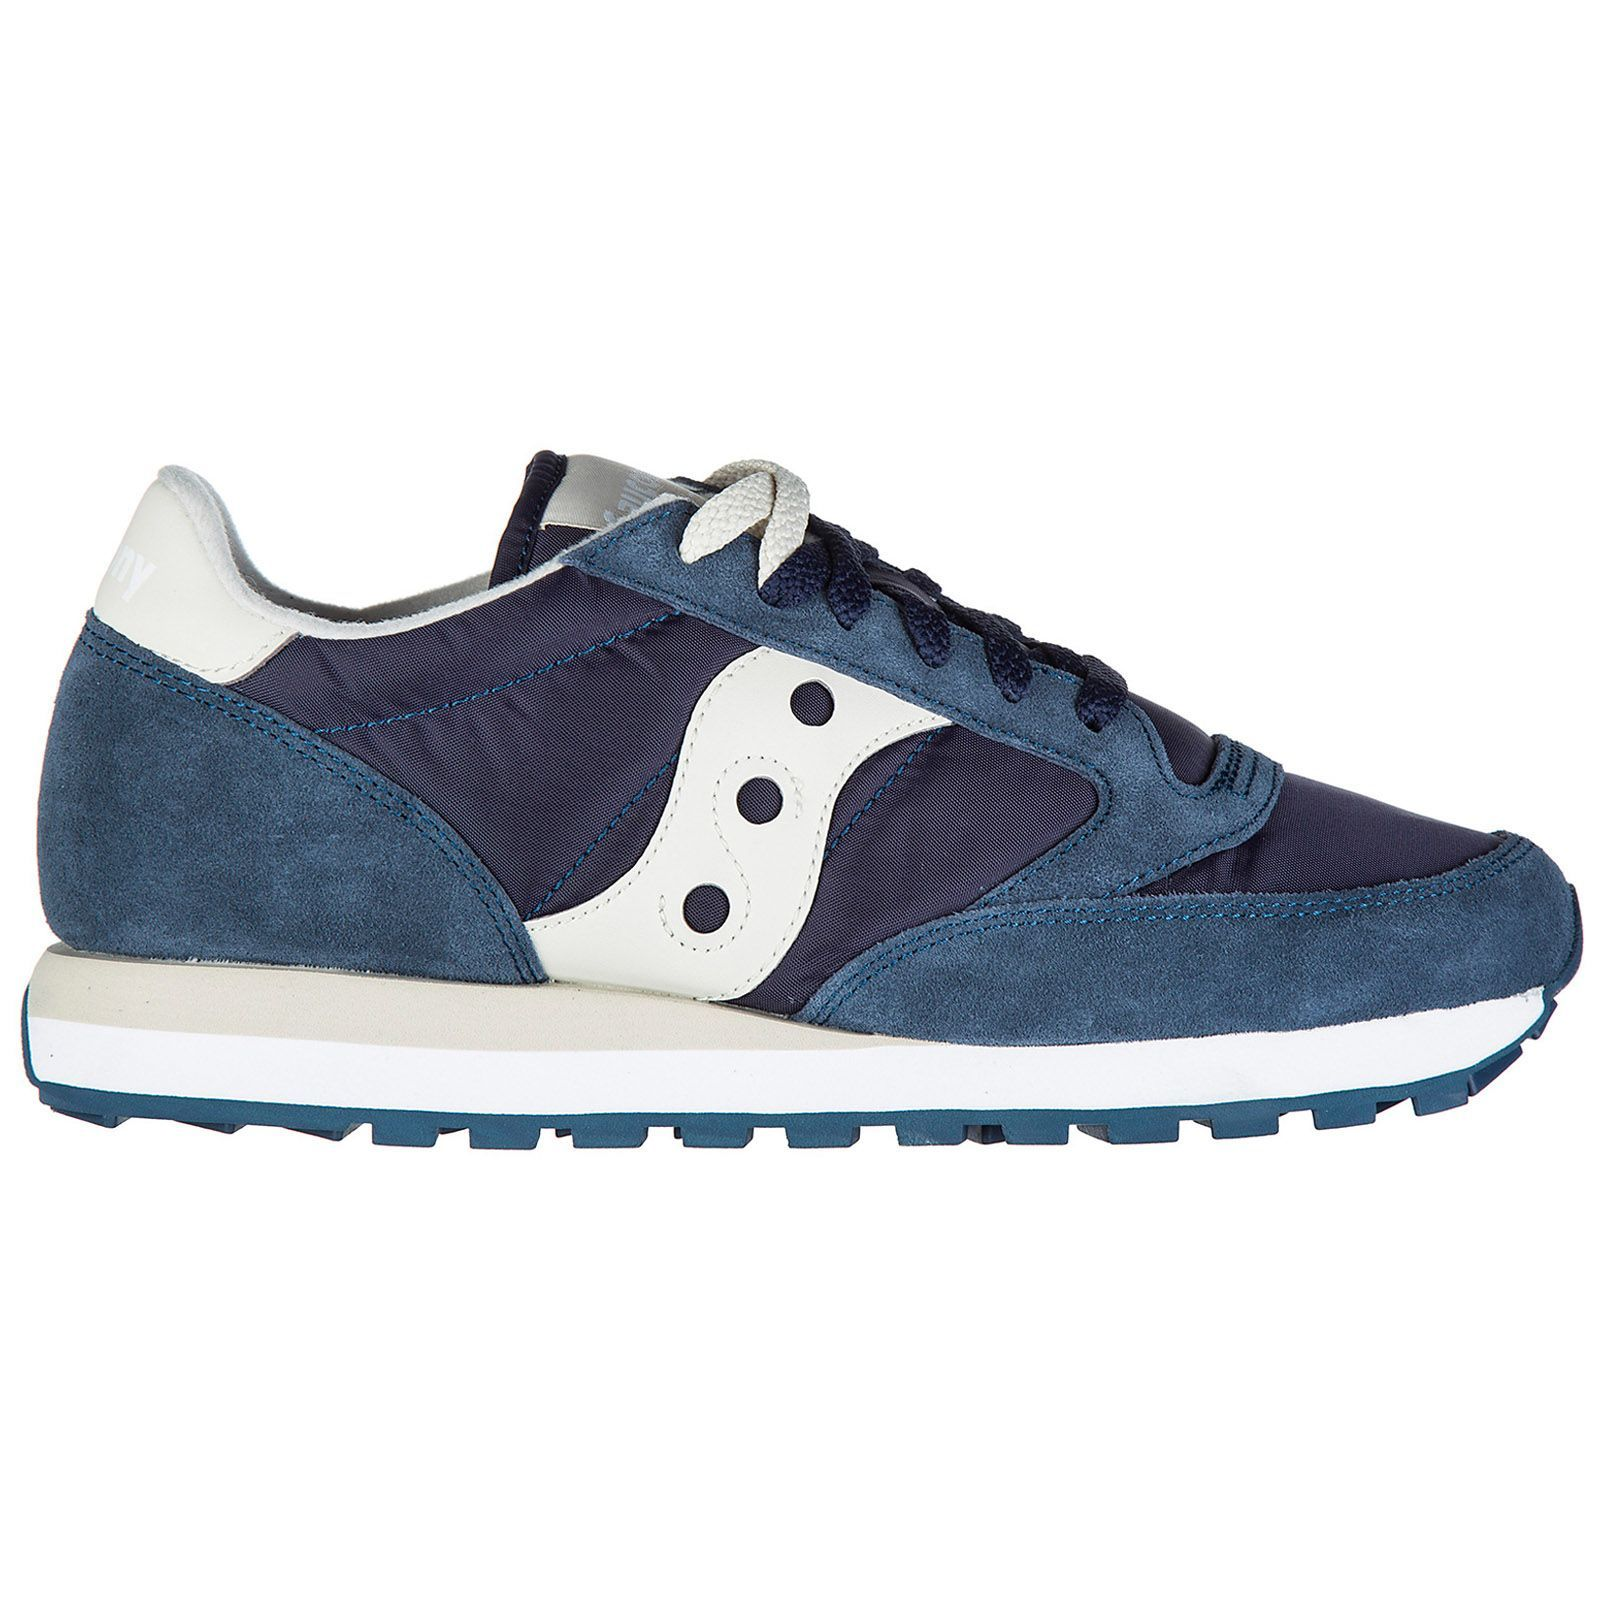 digit fox Weird  Saucony Shoes Suede Trainers Sneakers Jazz O In Navy / White / Marine    ModeSens   Mens blue suede shoes, Sneakers, Suede shoes men